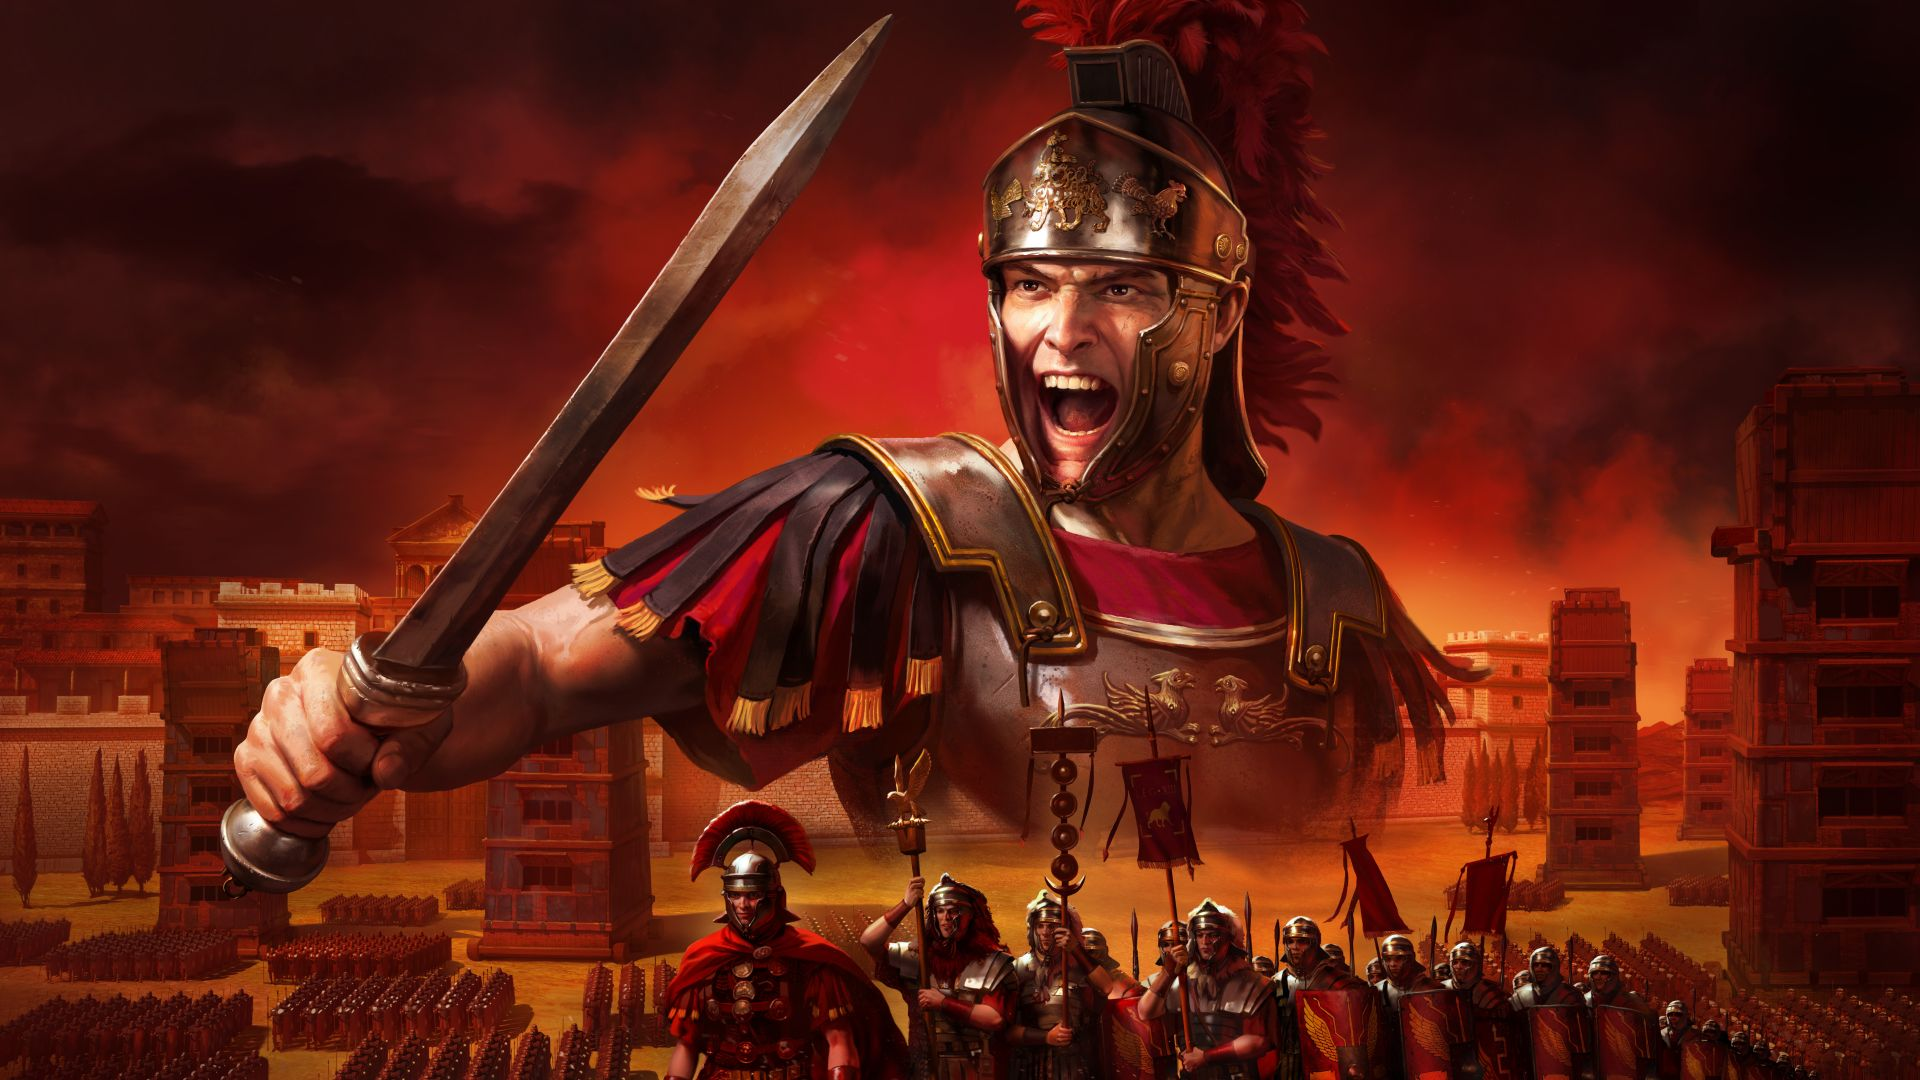 Rome: Total War gets a remaster next month